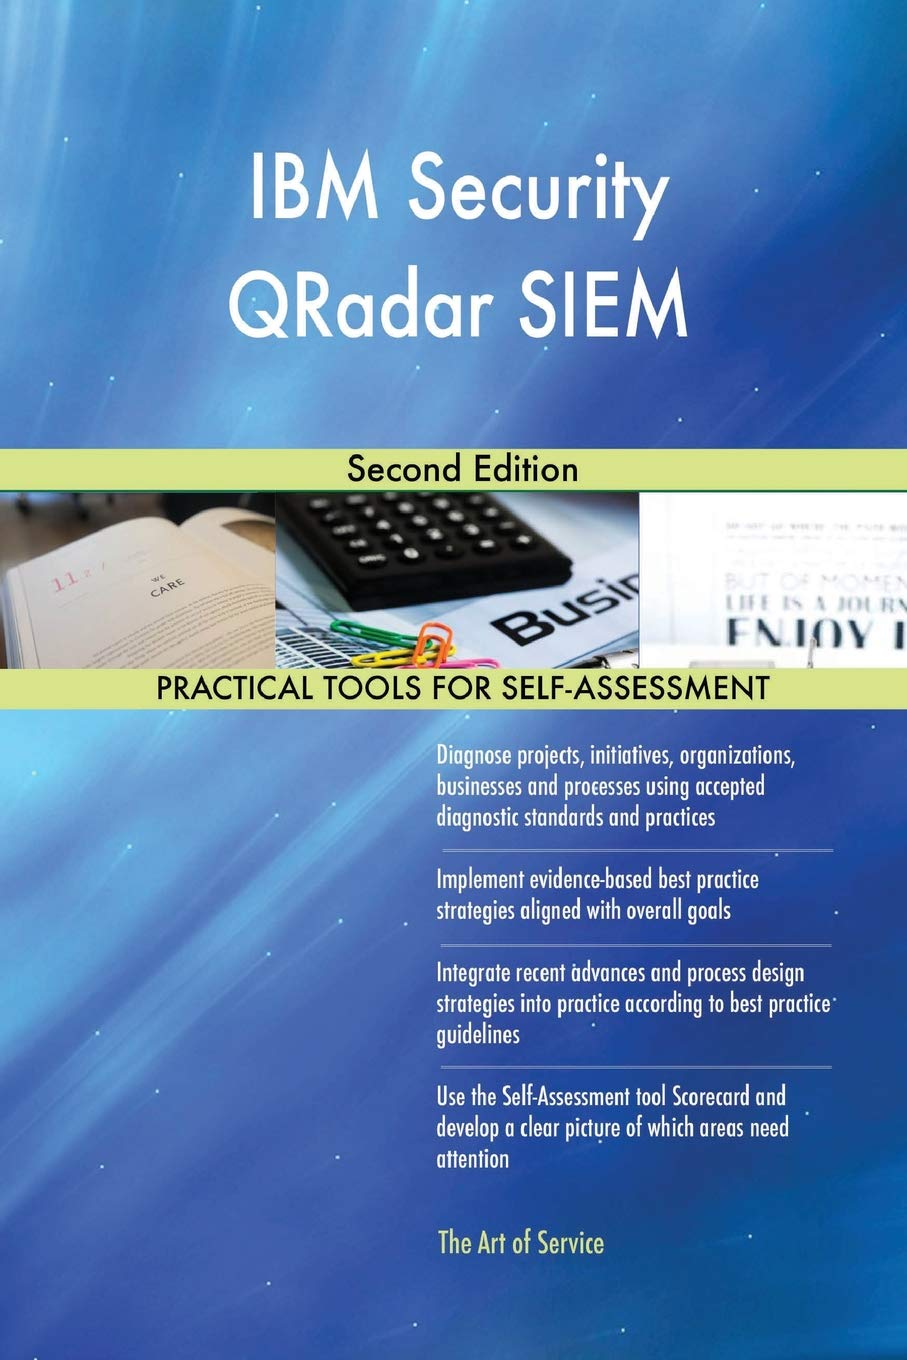 IBM Security QRadar SIEM Second Edition: Gerardus Blokdyk